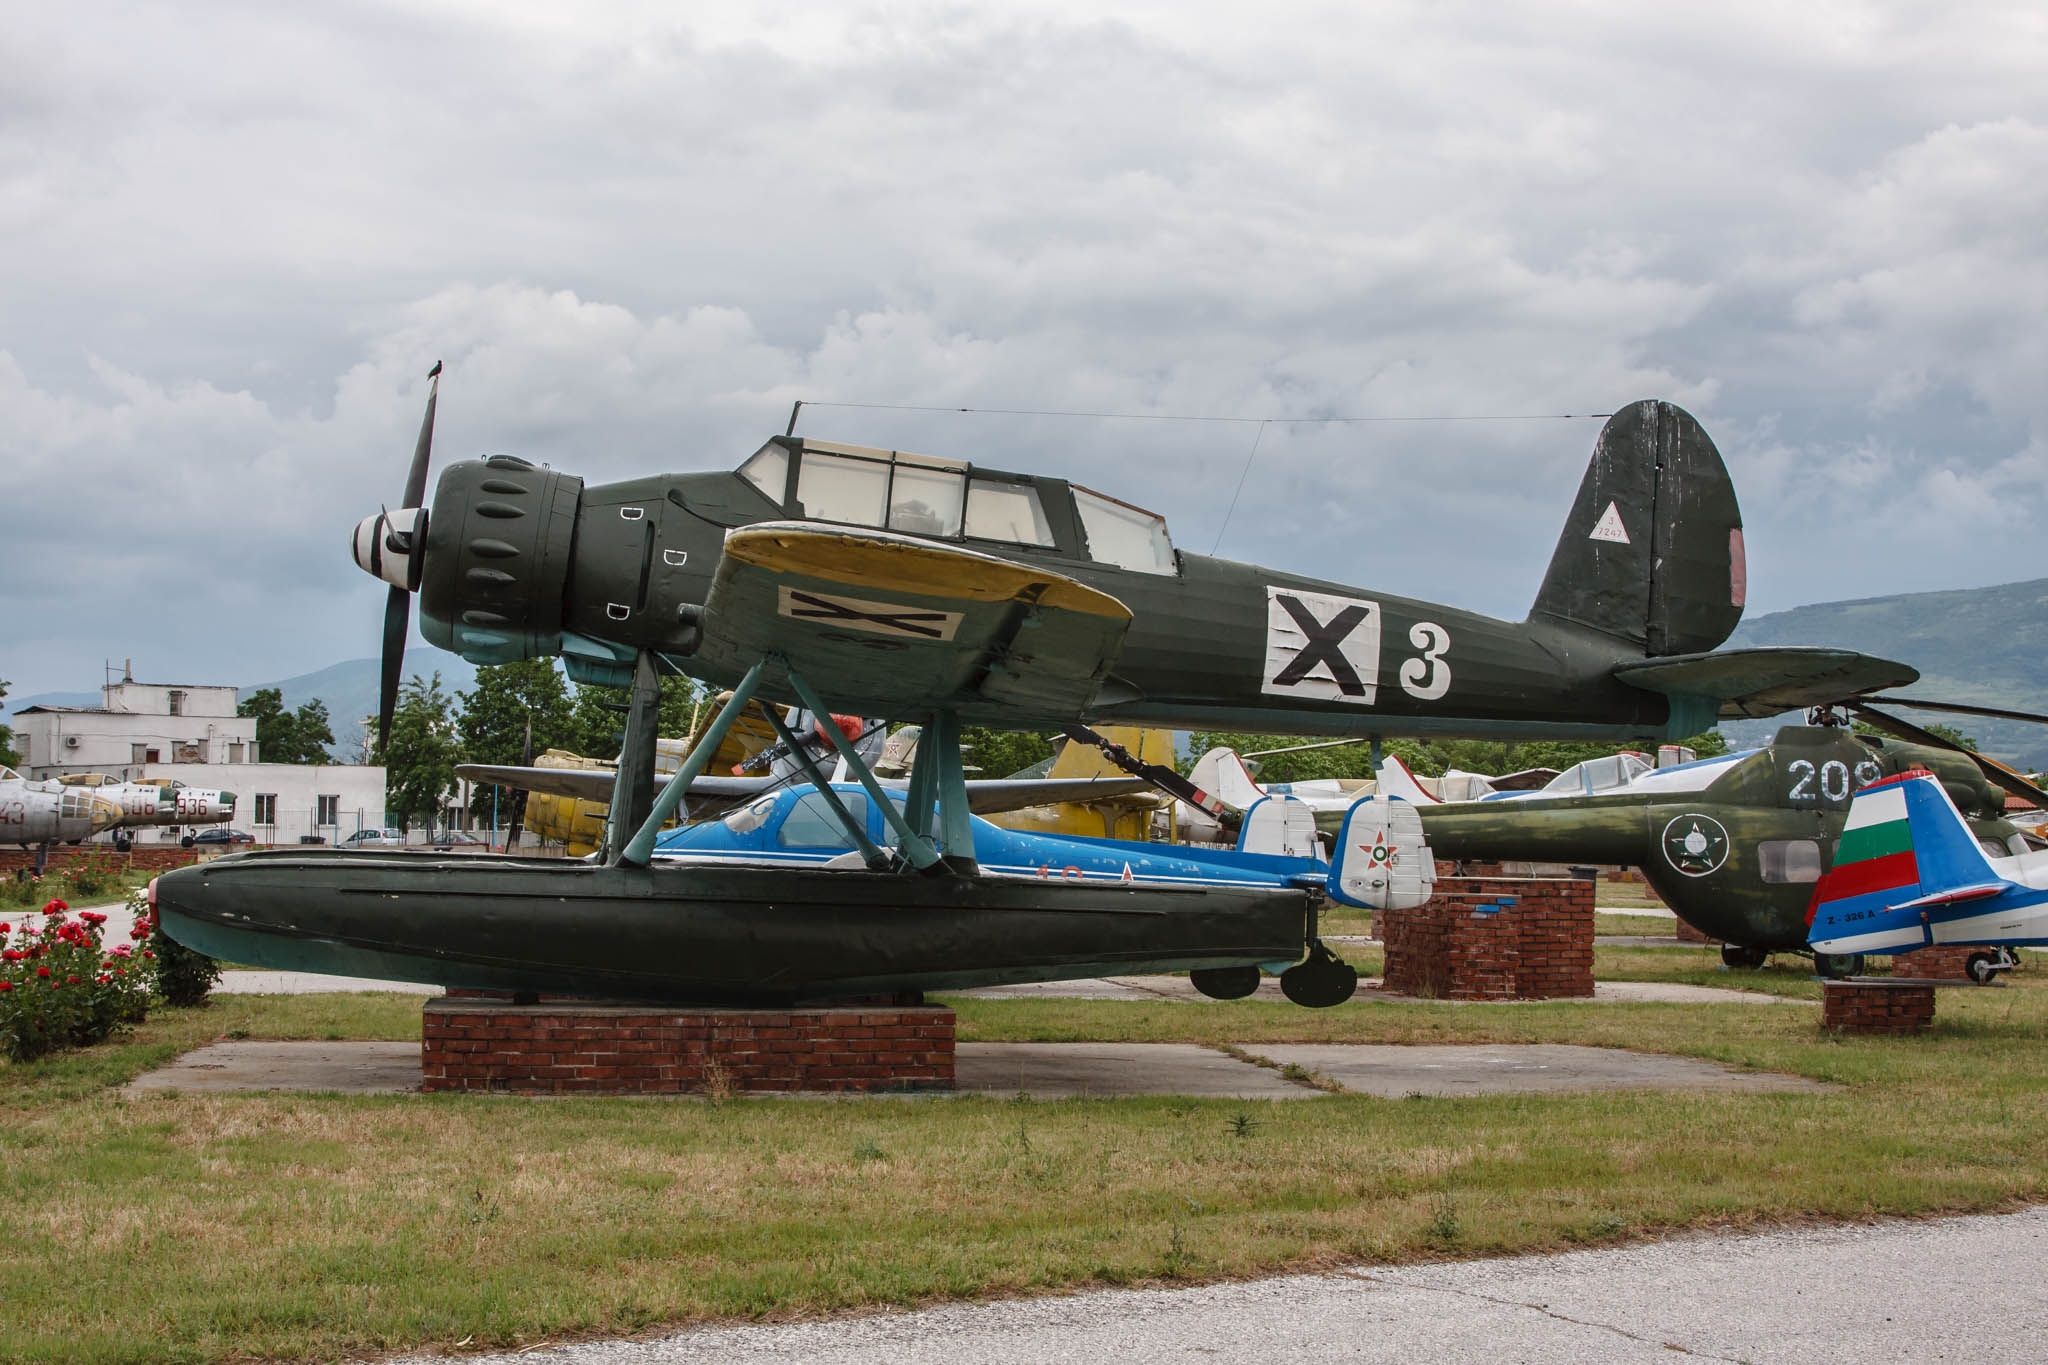 Bulgarian Museum of Aviation Krumovo